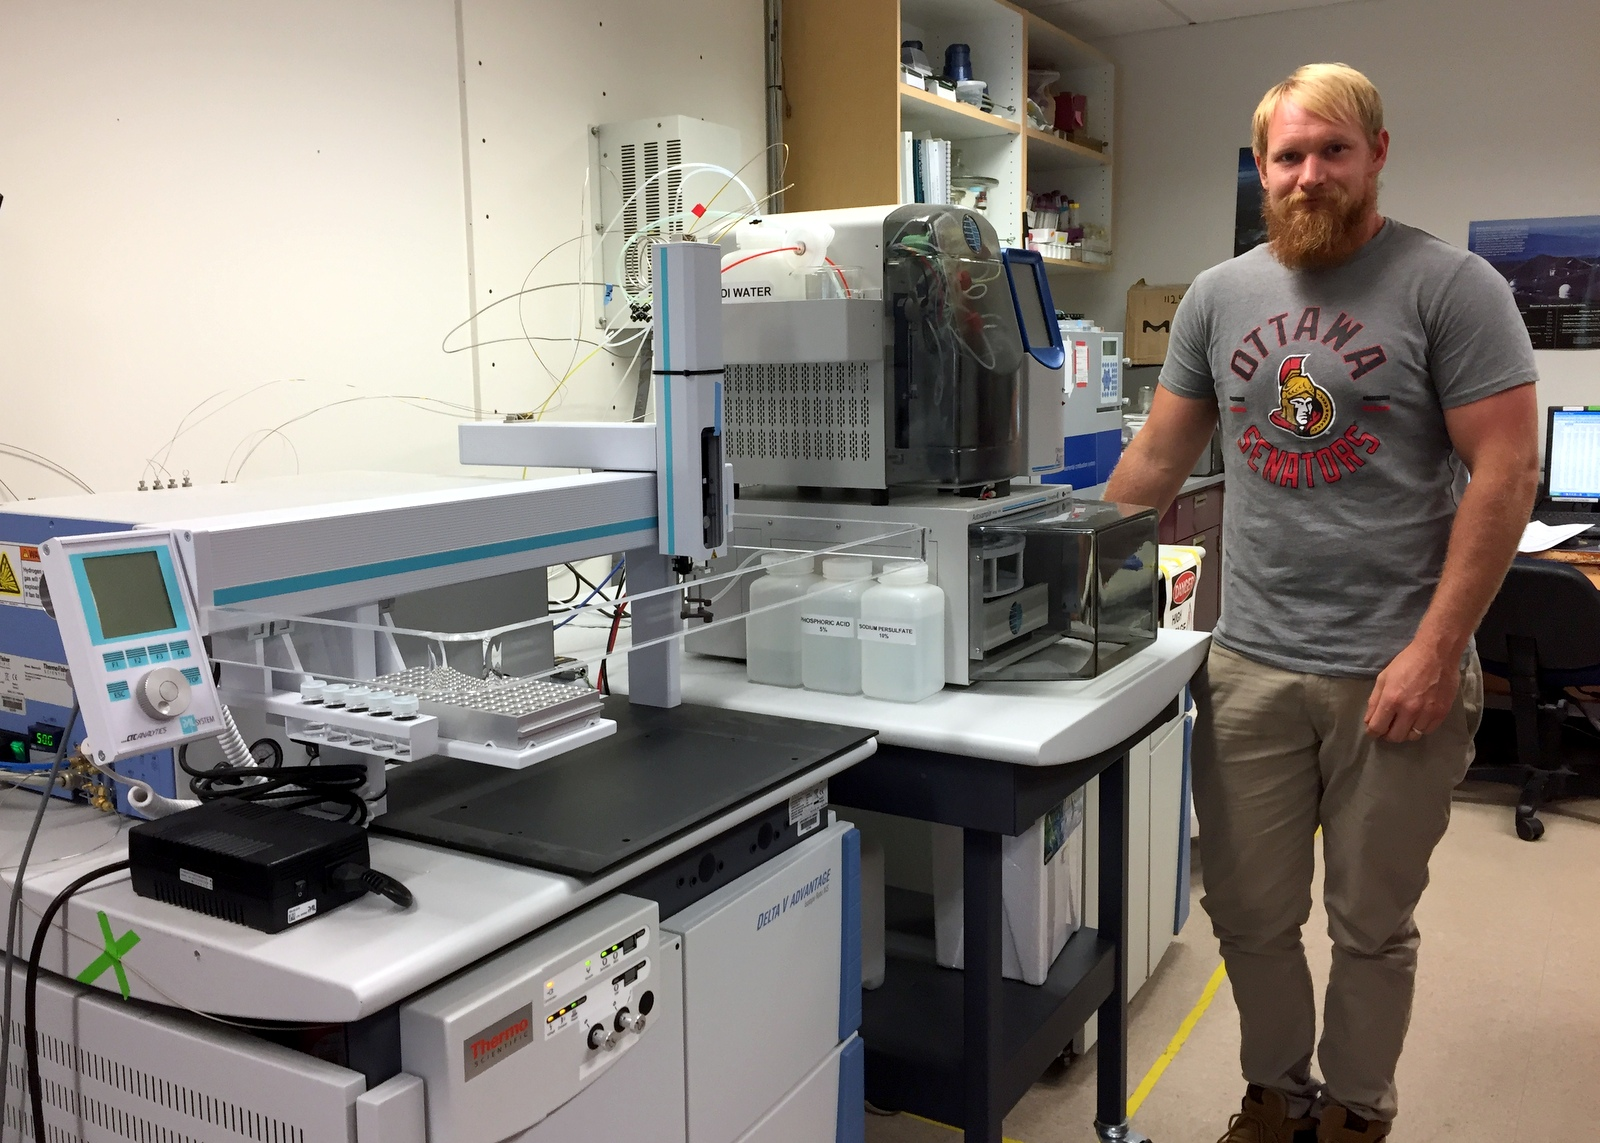 Erik Johnson stands next to the spectrometer.